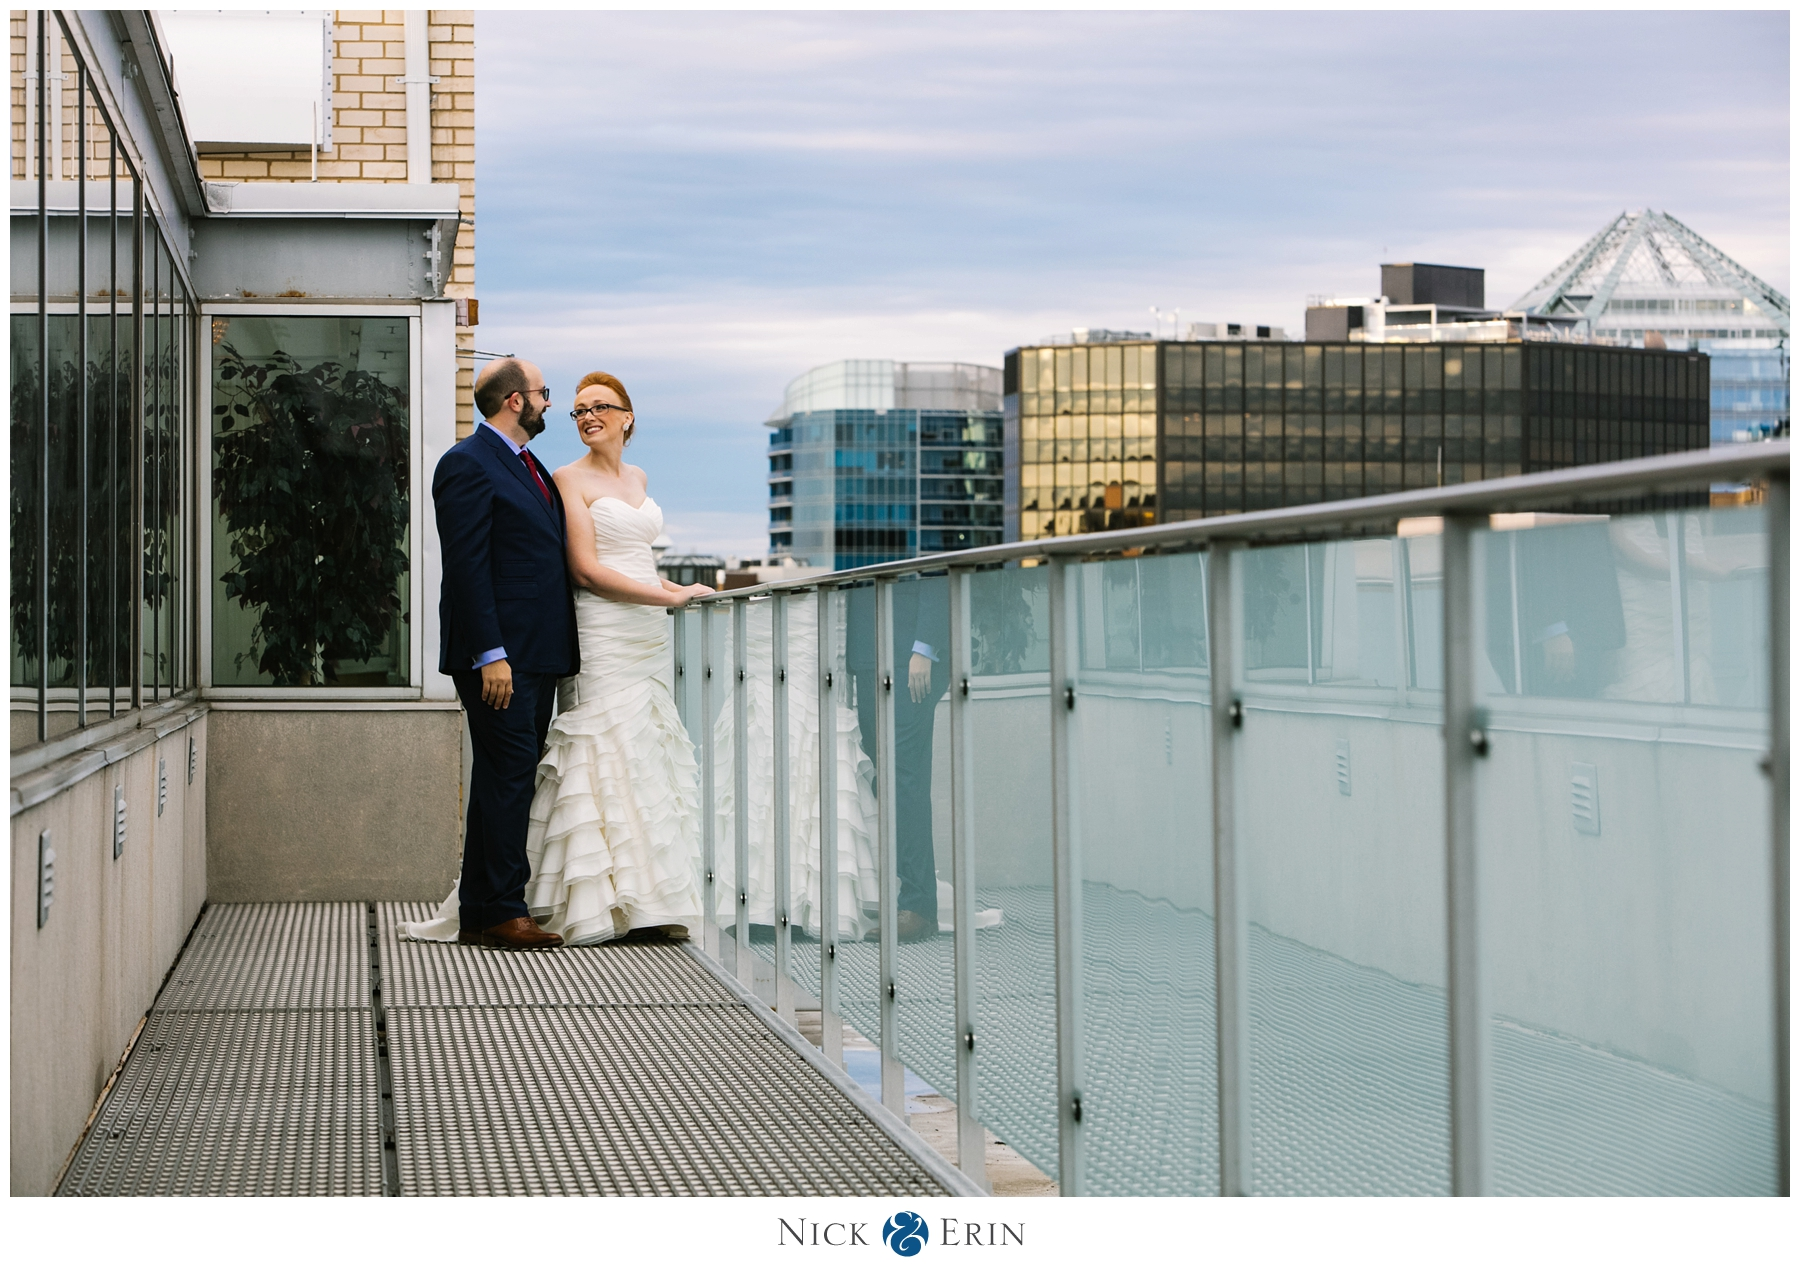 donner_photography_washington-dc-wedding_alanna-josh_0031